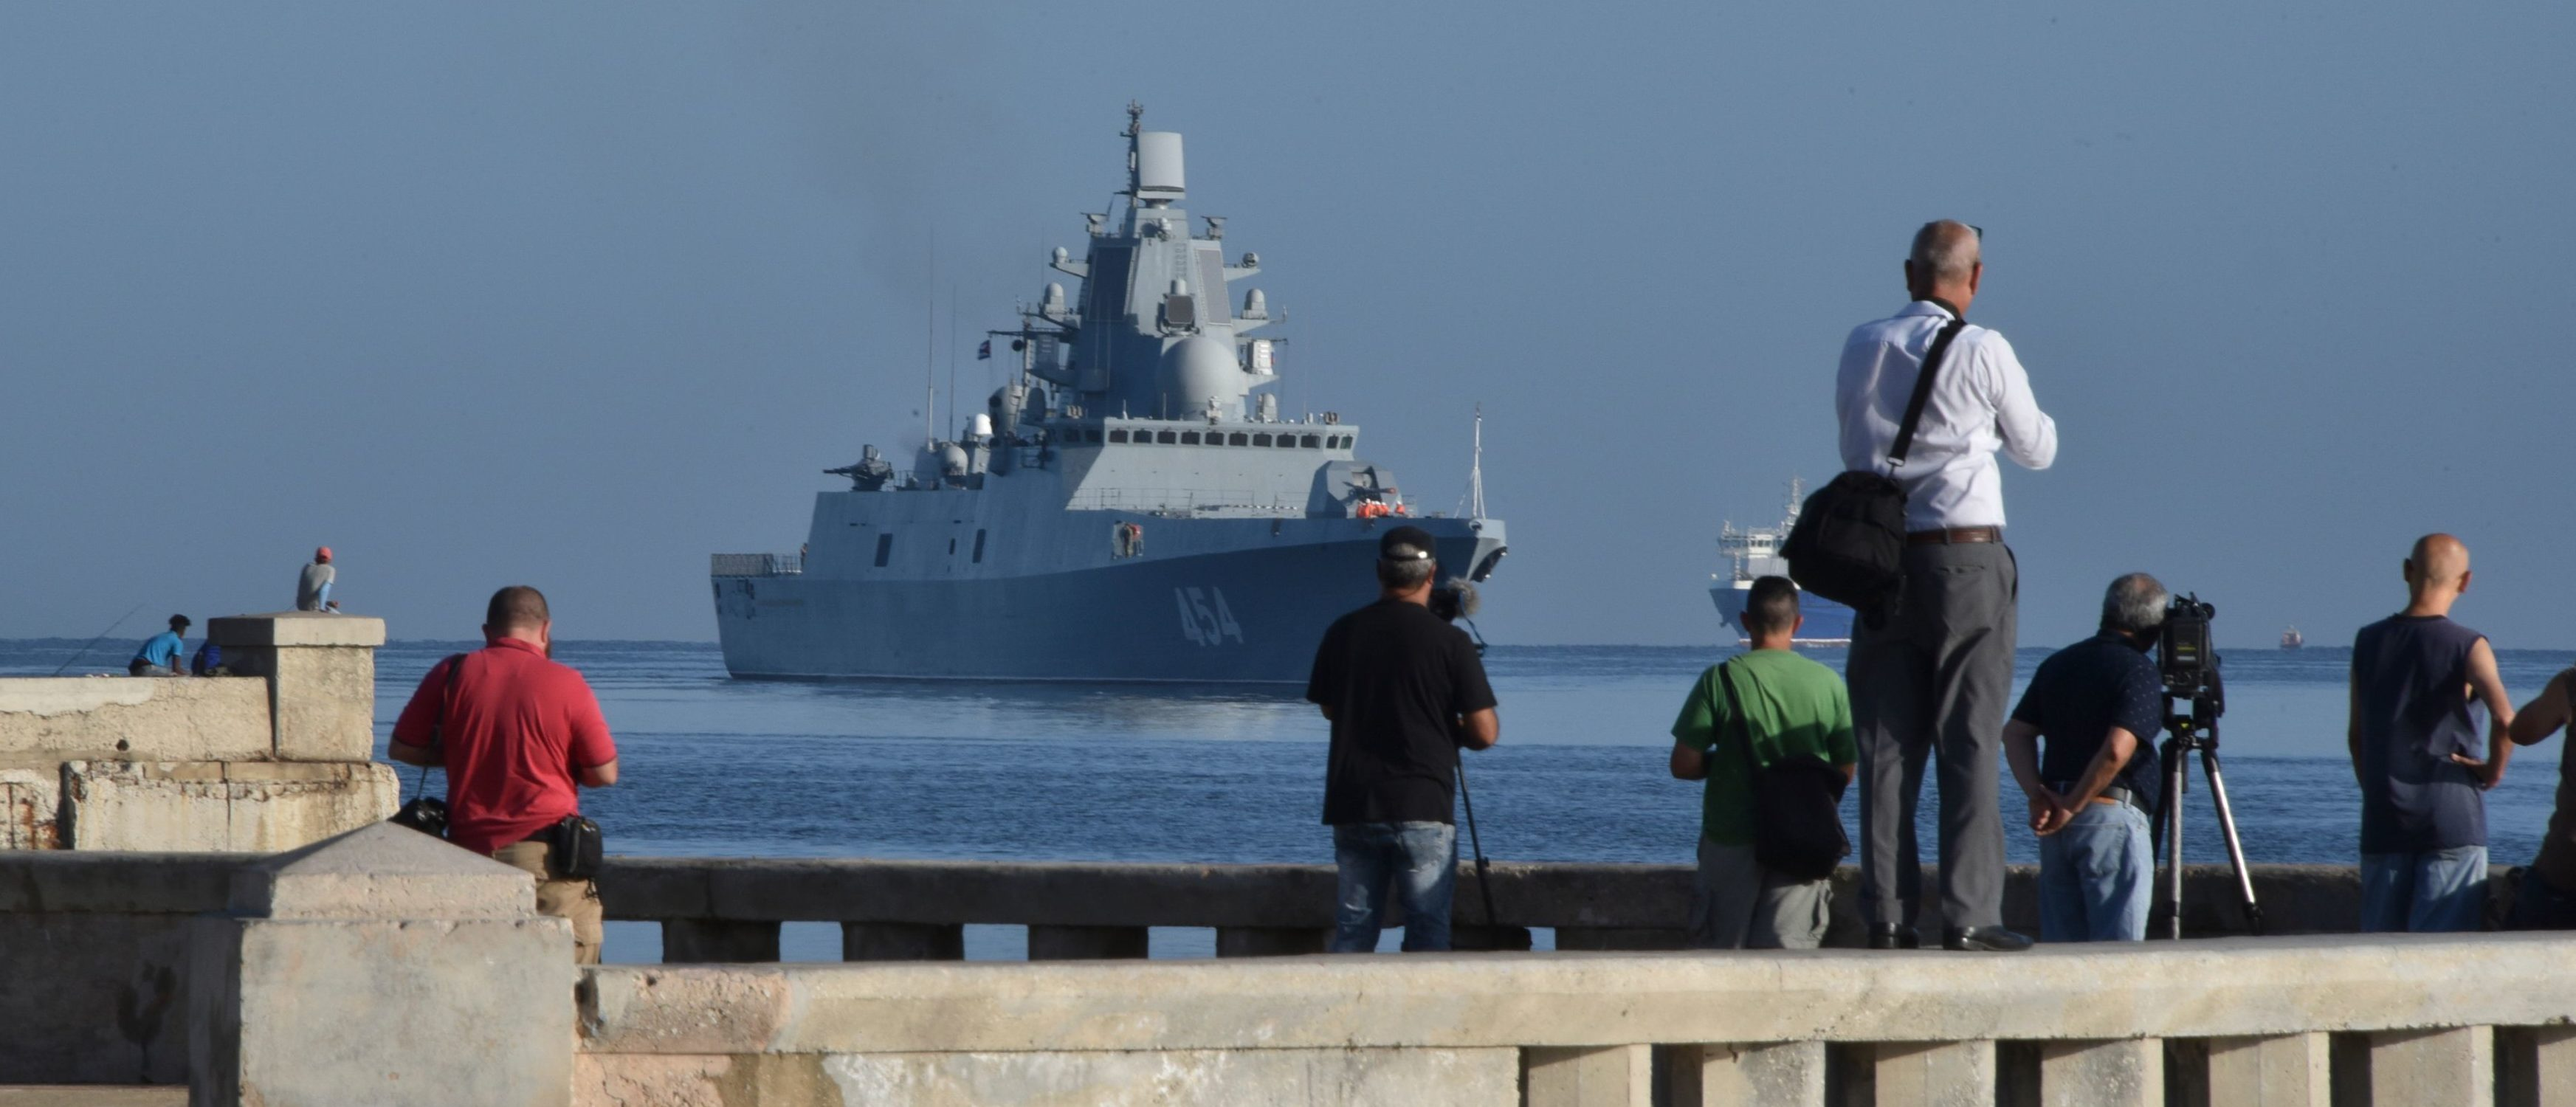 Vessels of the Russian Federation Navy arrive at the port of Havana, on June 24, 2019. (ADALBERTO ROQUE/AFP/Getty Images)